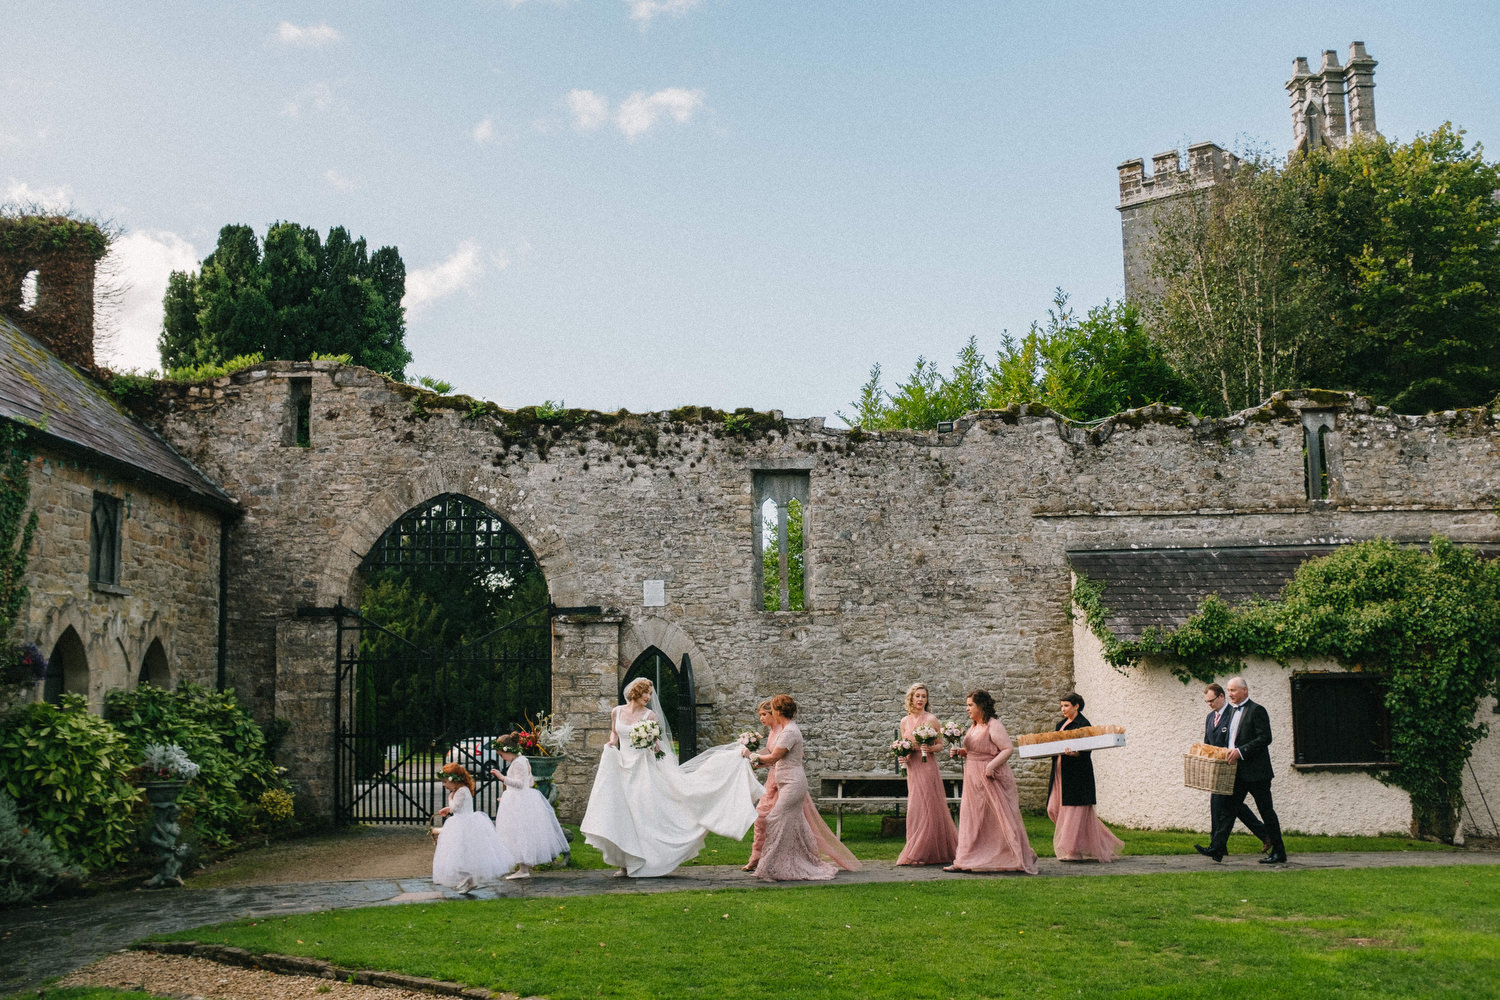 000000000000000000000103_bride_style_vintage_photography_david_mcclelland_ireland_castle_hollywood_kinnity_wedding_photographer_fujifilm